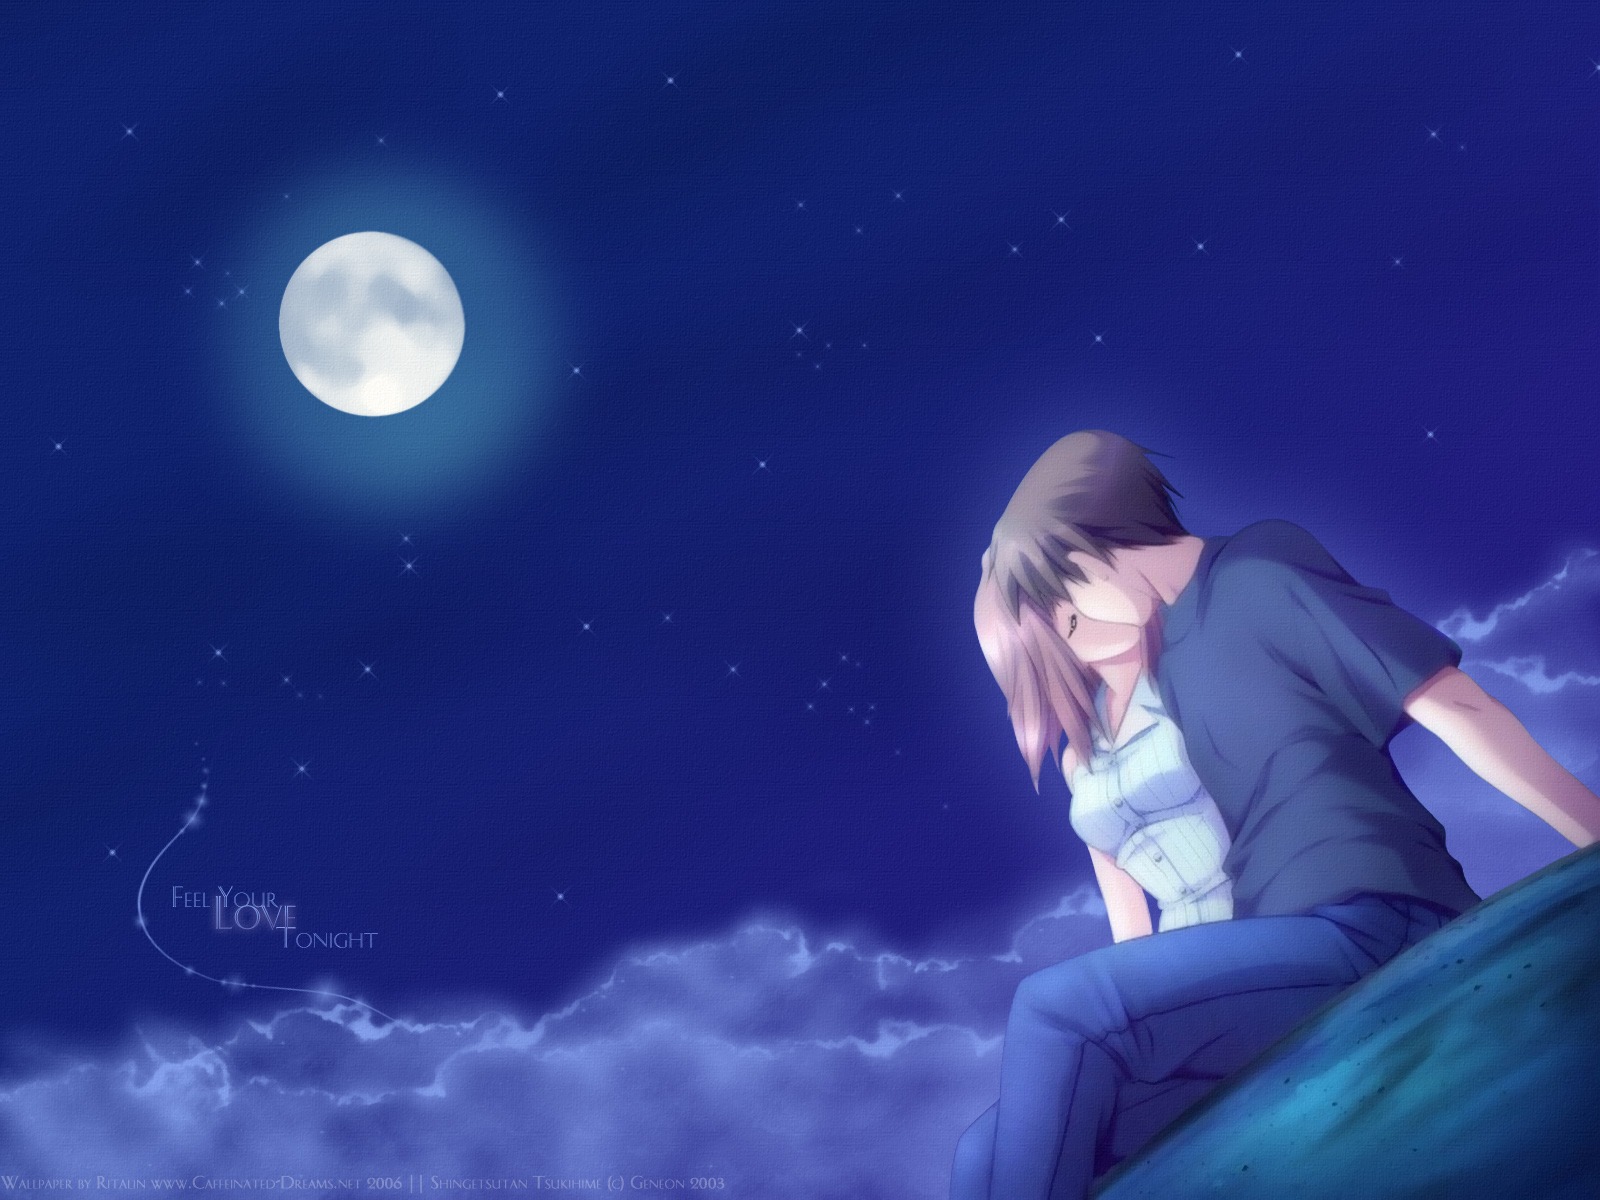 Desktop Wallpapers Backgrounds Anime Wallpapers Anime Love 1600x1200